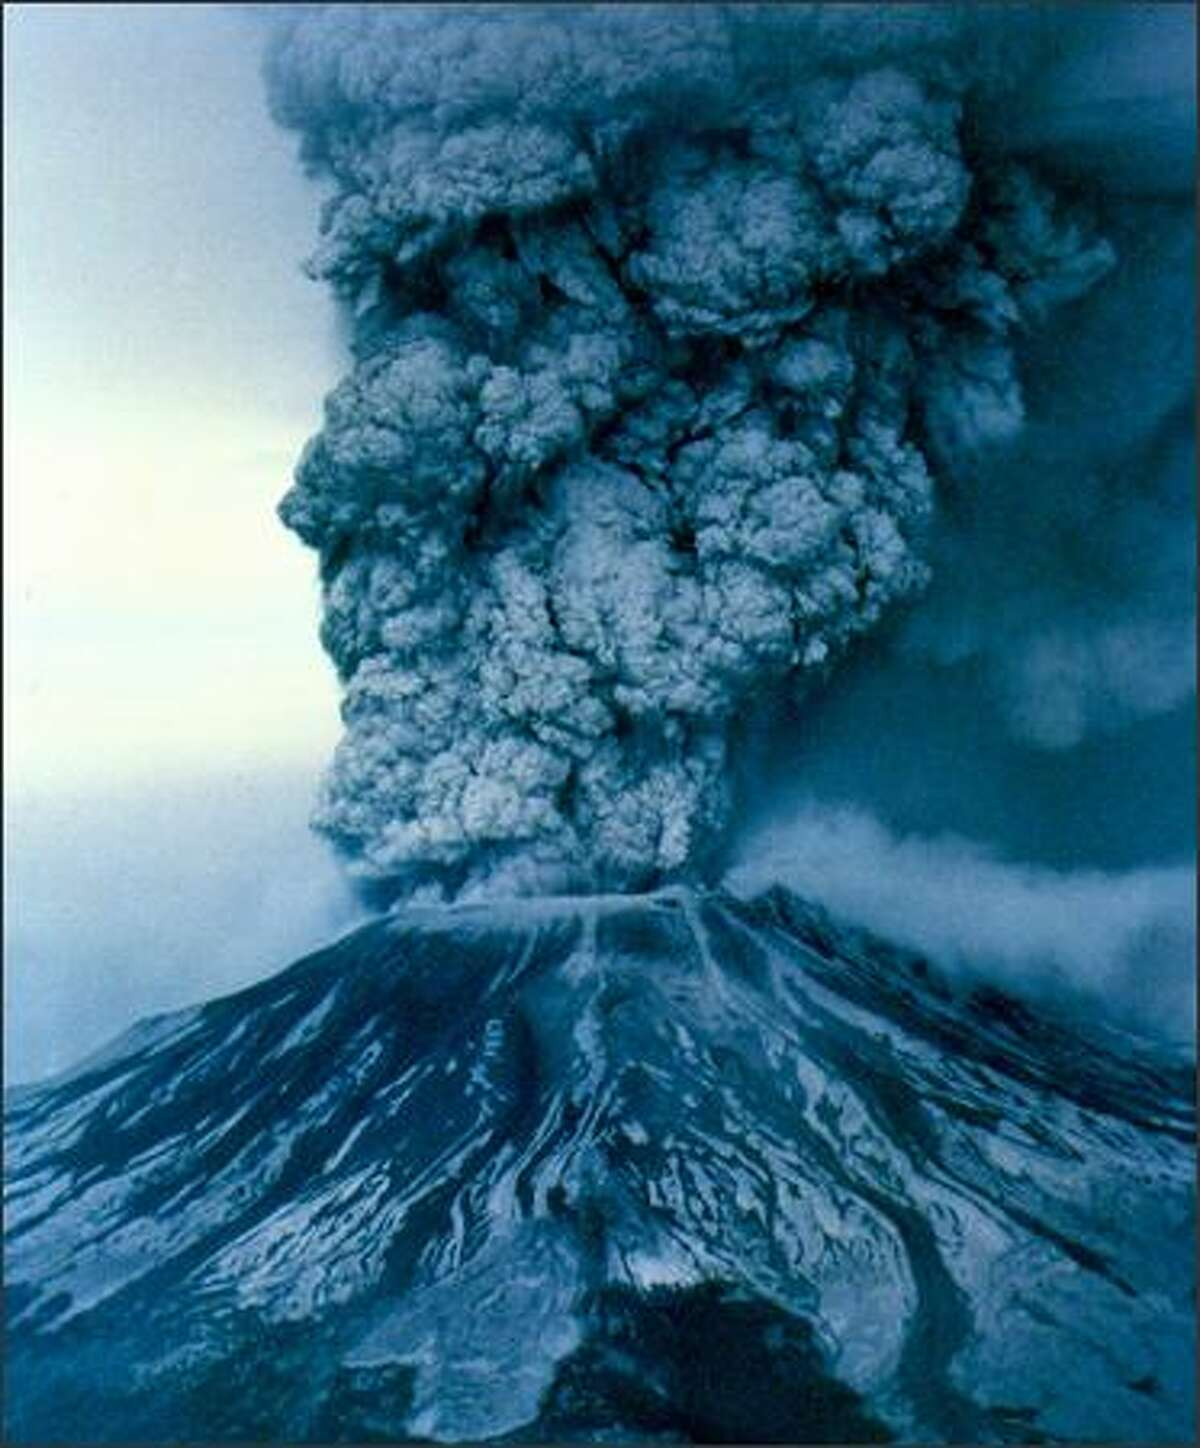 On May 18, 1980, Mount St. Helens erupted, causing widespread damage and sending ash thousands of feet into the air. P-I file photo by Grant M. Haller